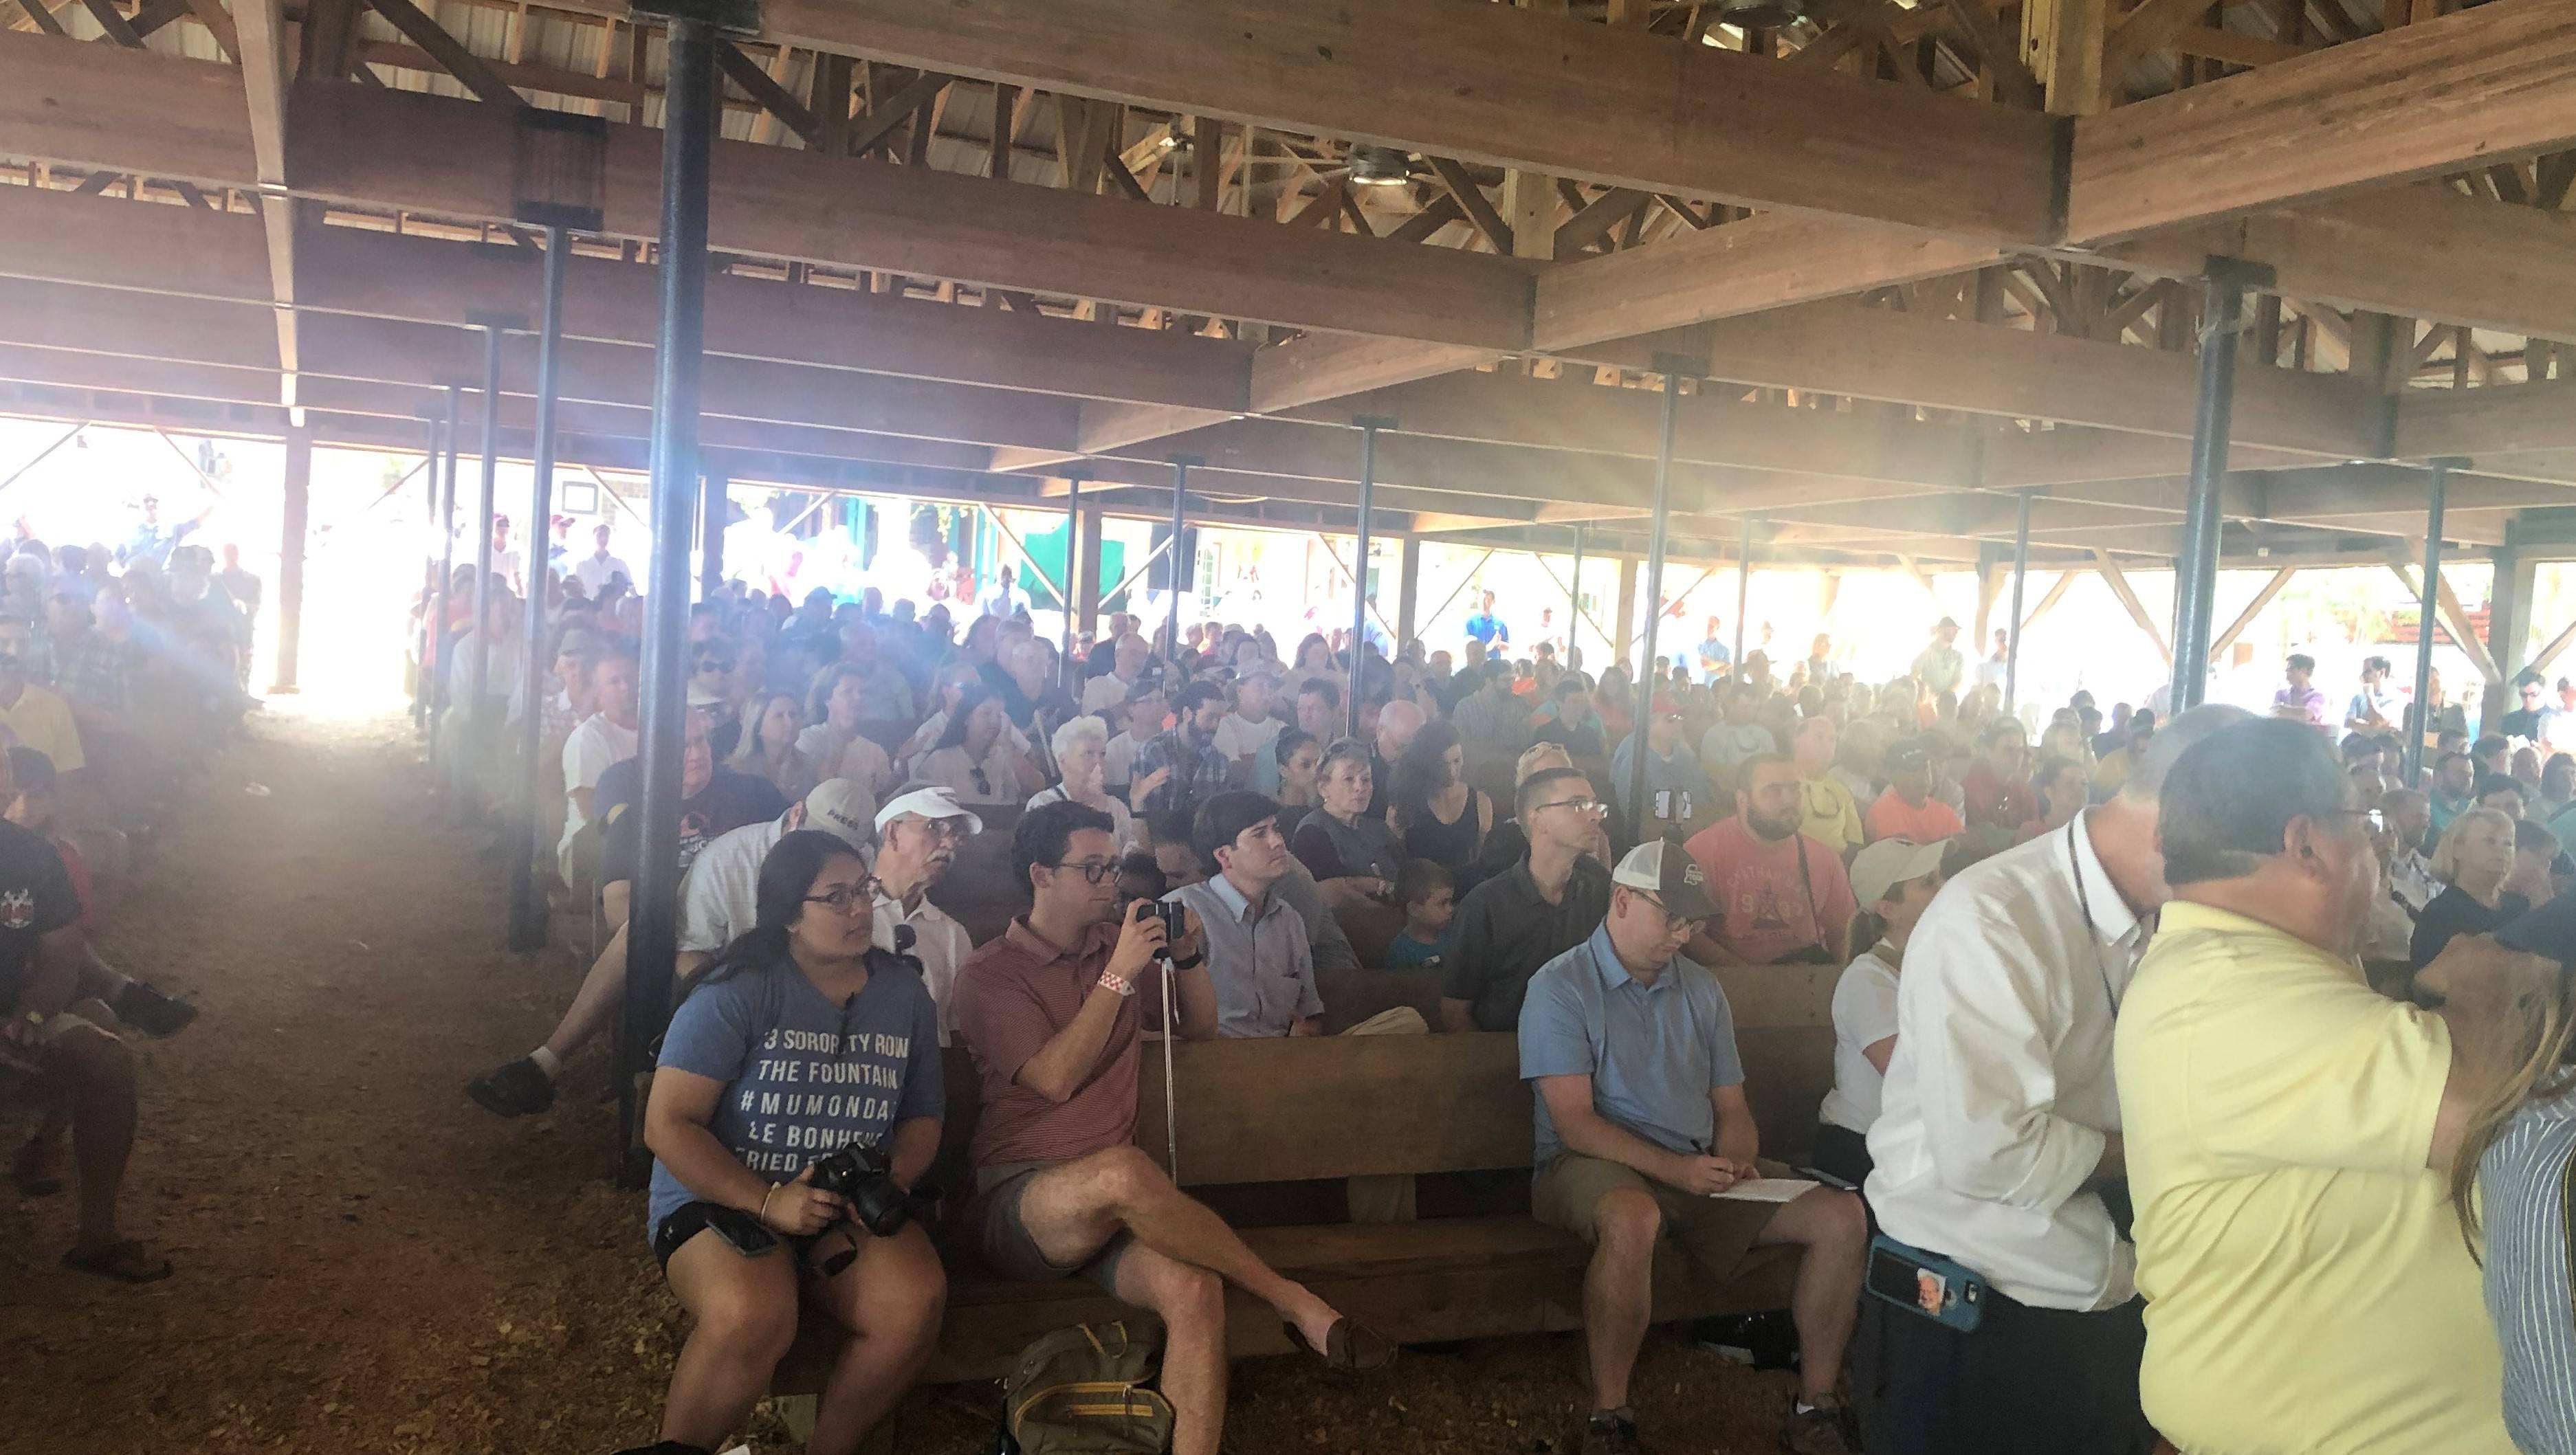 Hood and Reeves take turns insulting one another at Neshoba county Fair